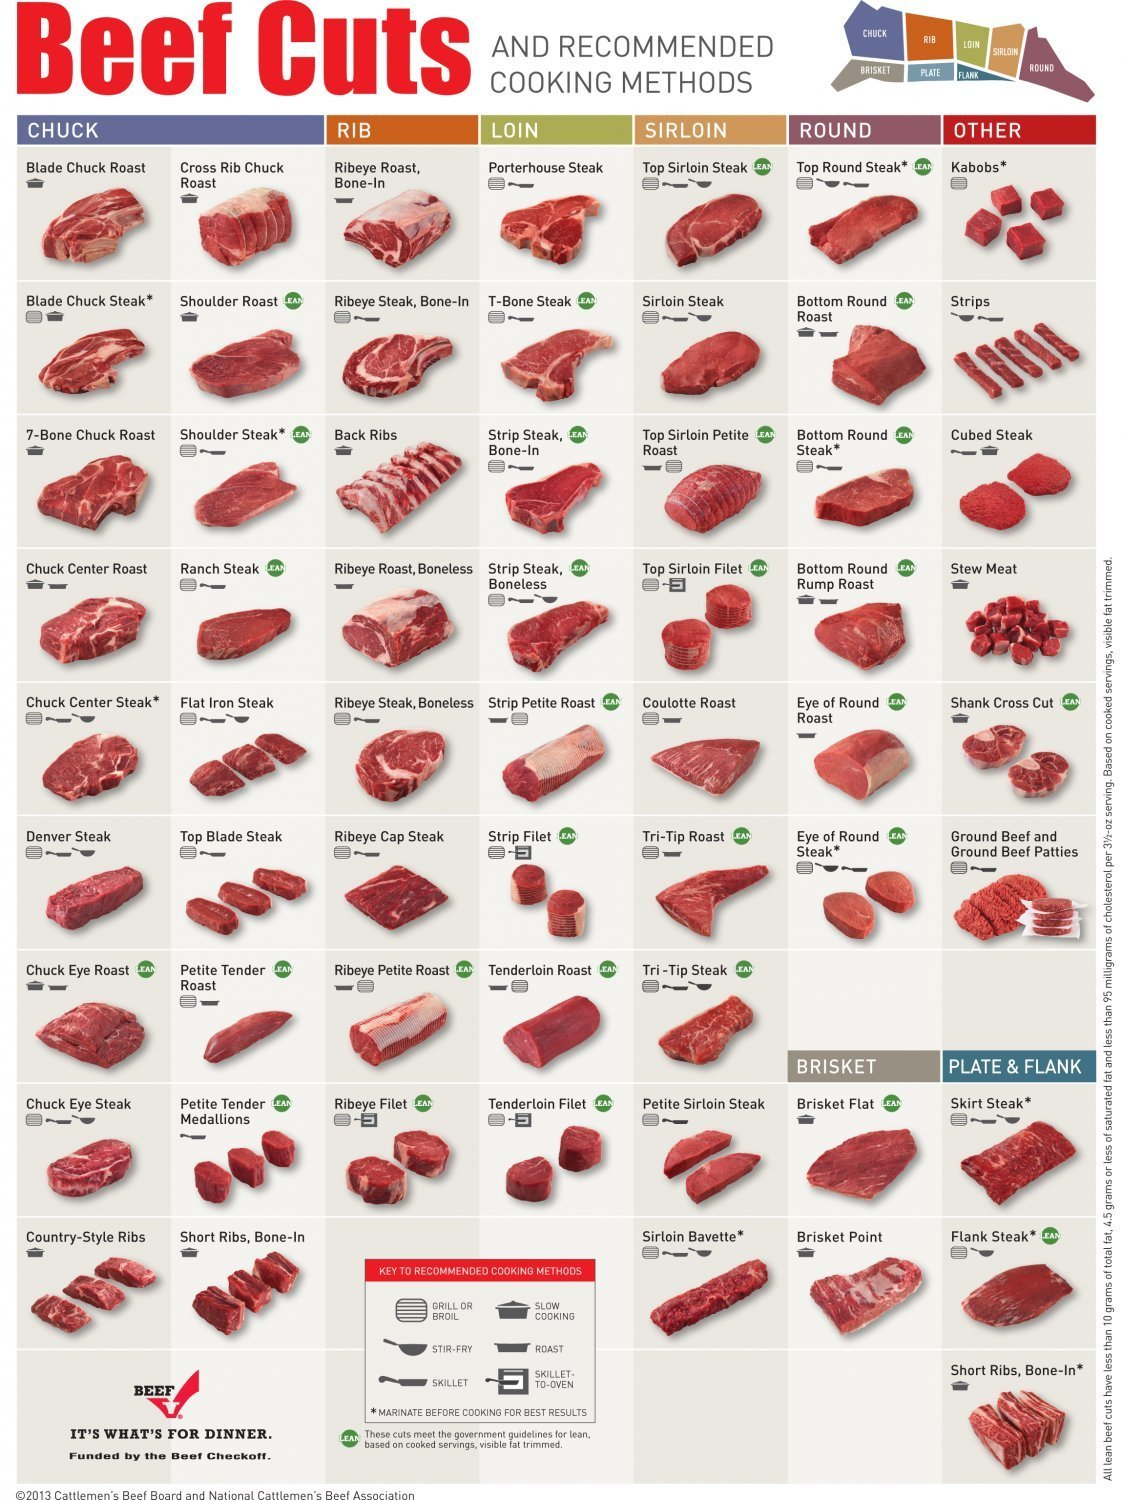 Beef Cuts Recommended Cooking Methods Chart  13x19 inches Poster Print